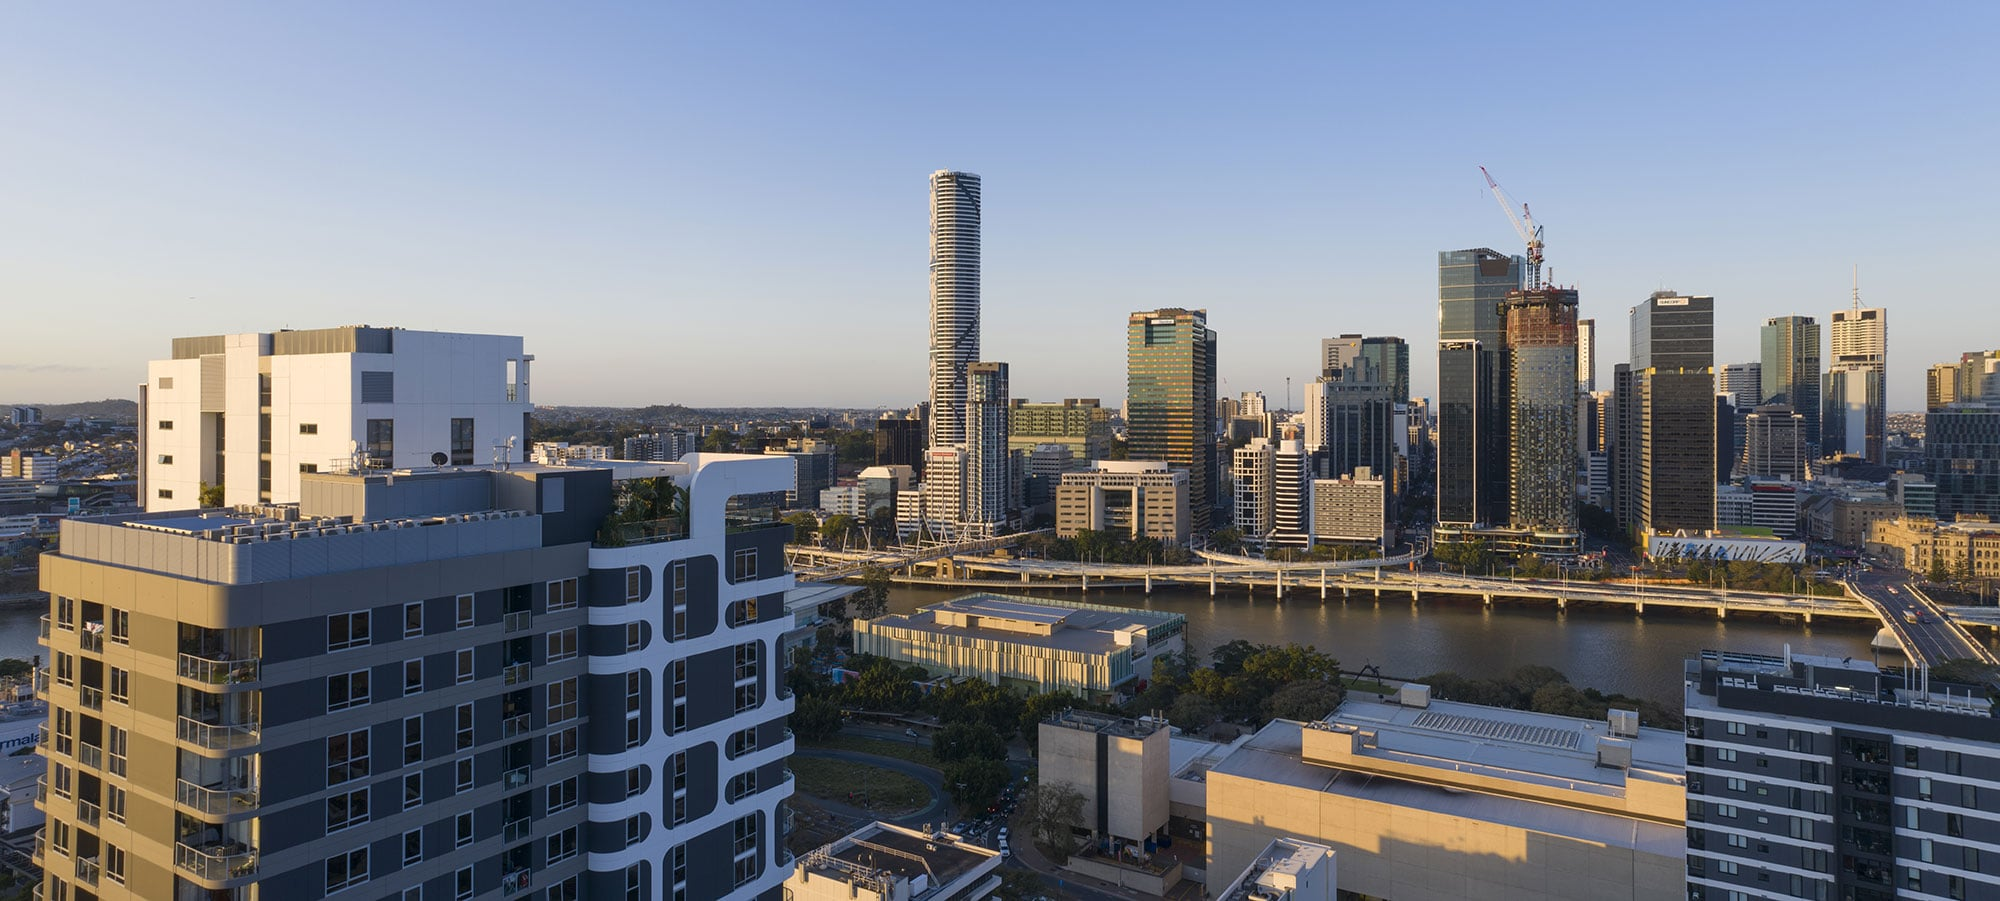 The penthouse view looking north west - drone photography for South Brisbane apartment development 3D Render backgrounds